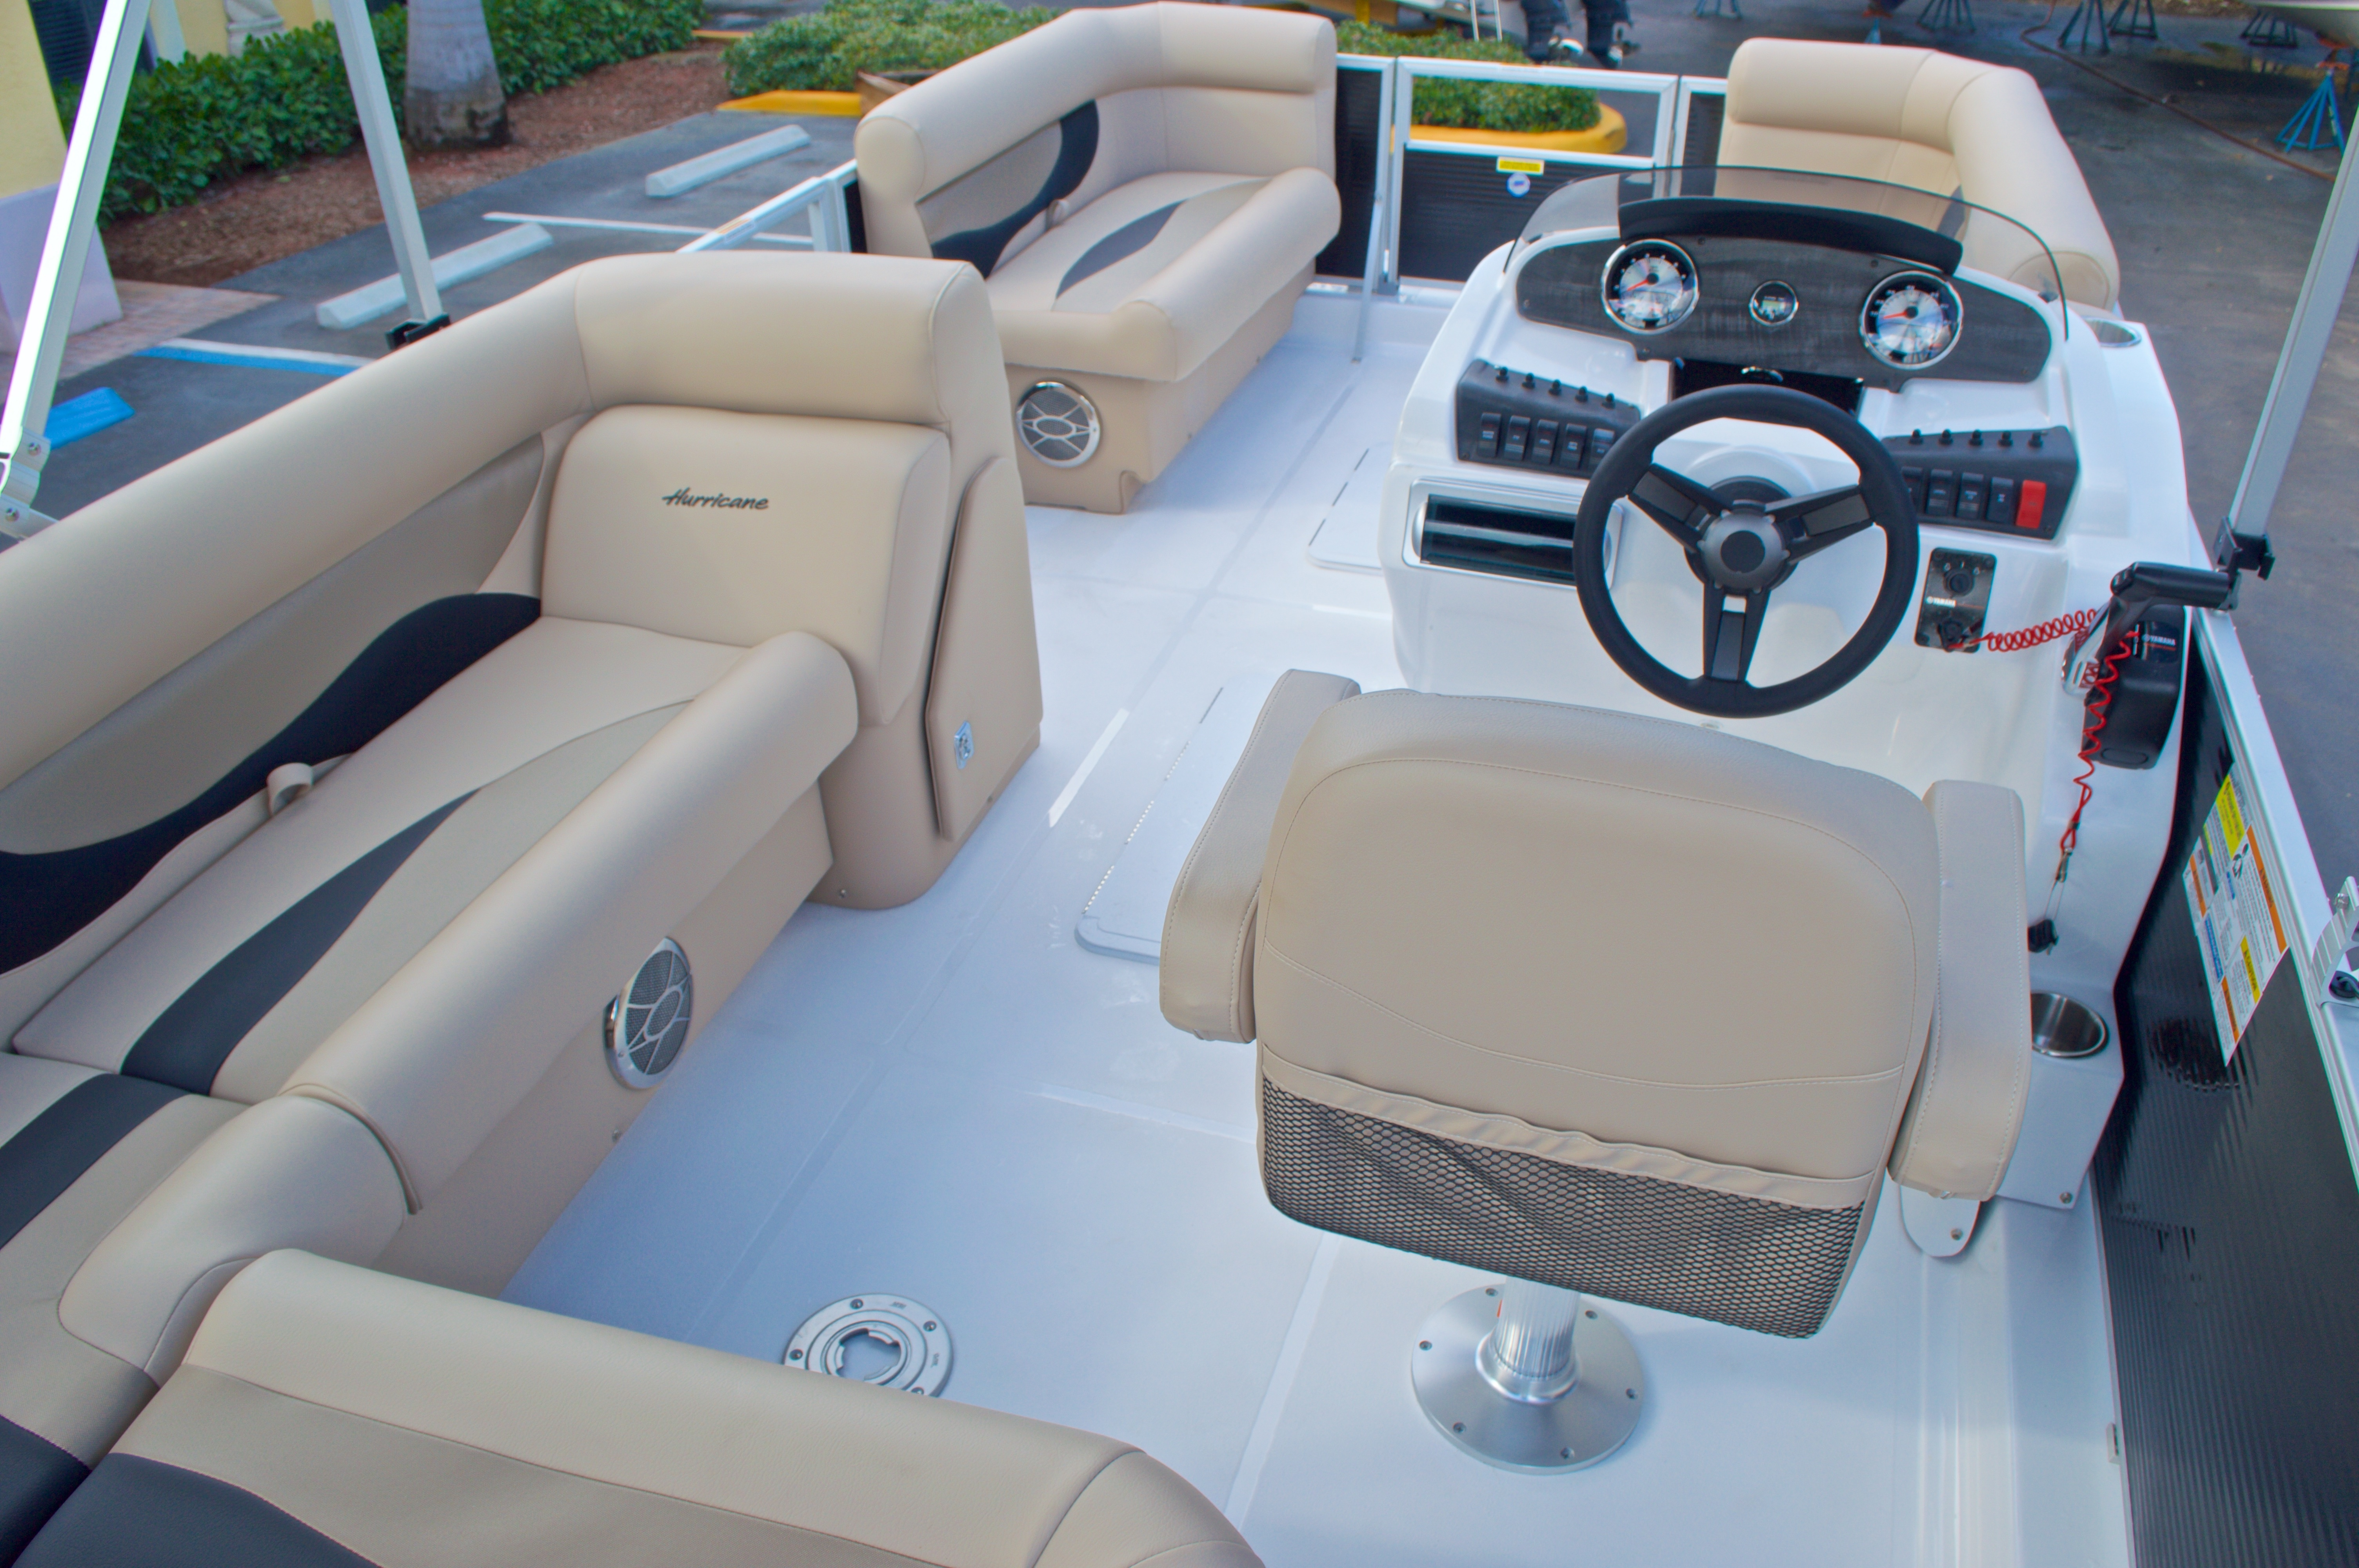 Thumbnail 11 for New 2016 Hurricane Fundeck FD 196 OB boat for sale in West Palm Beach, FL